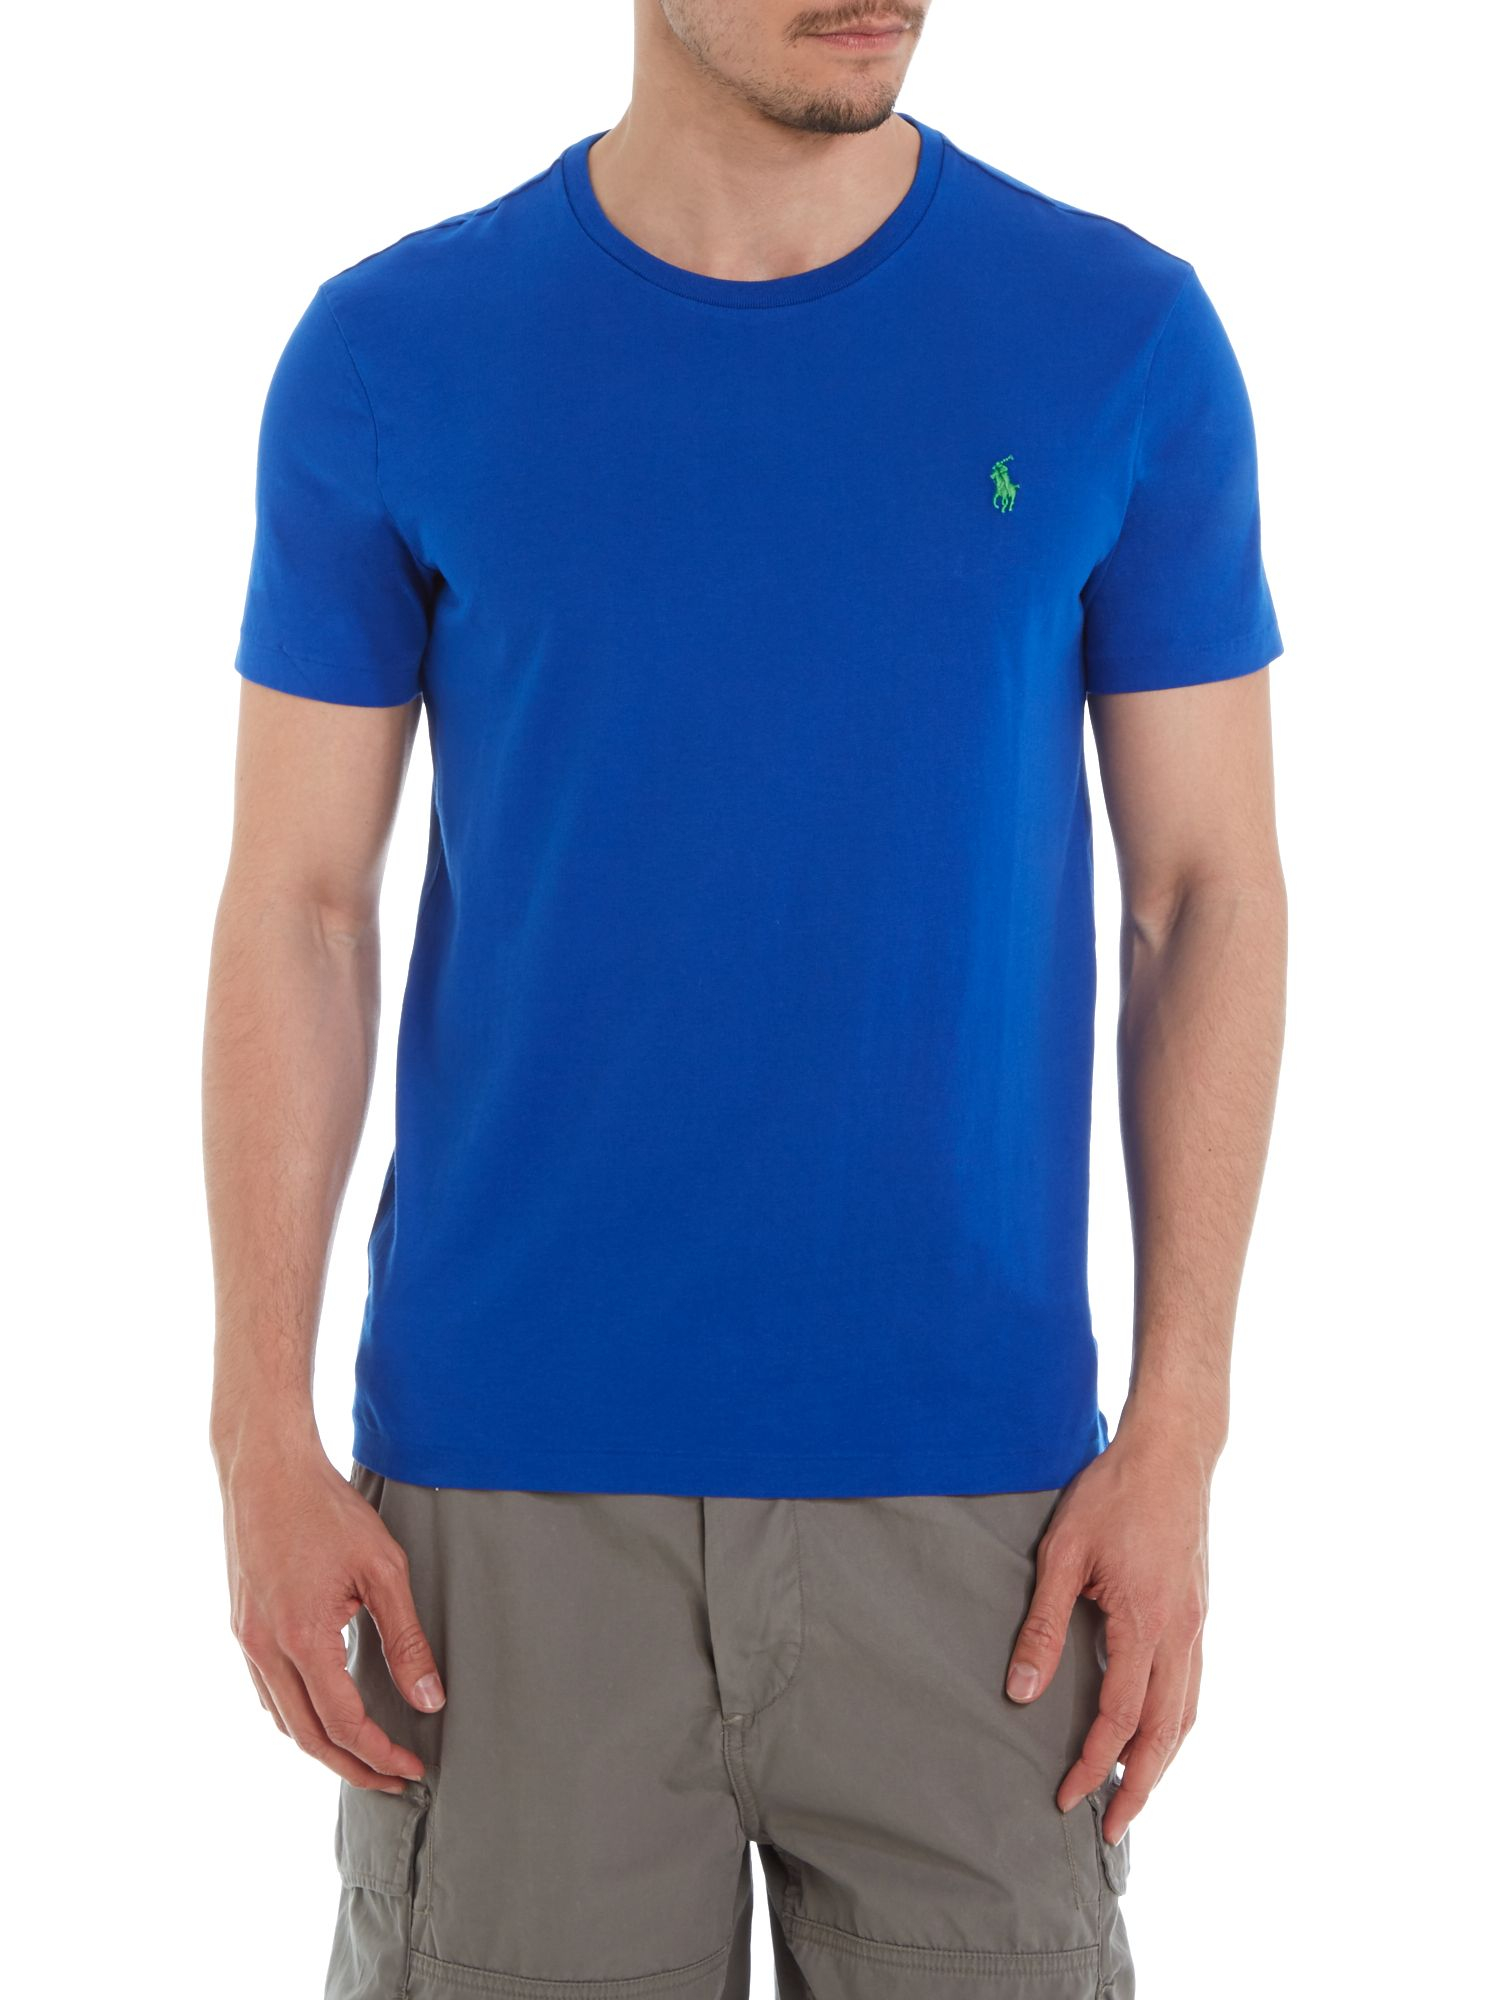 blue ralph lauren t shirt images galleries with a bite. Black Bedroom Furniture Sets. Home Design Ideas